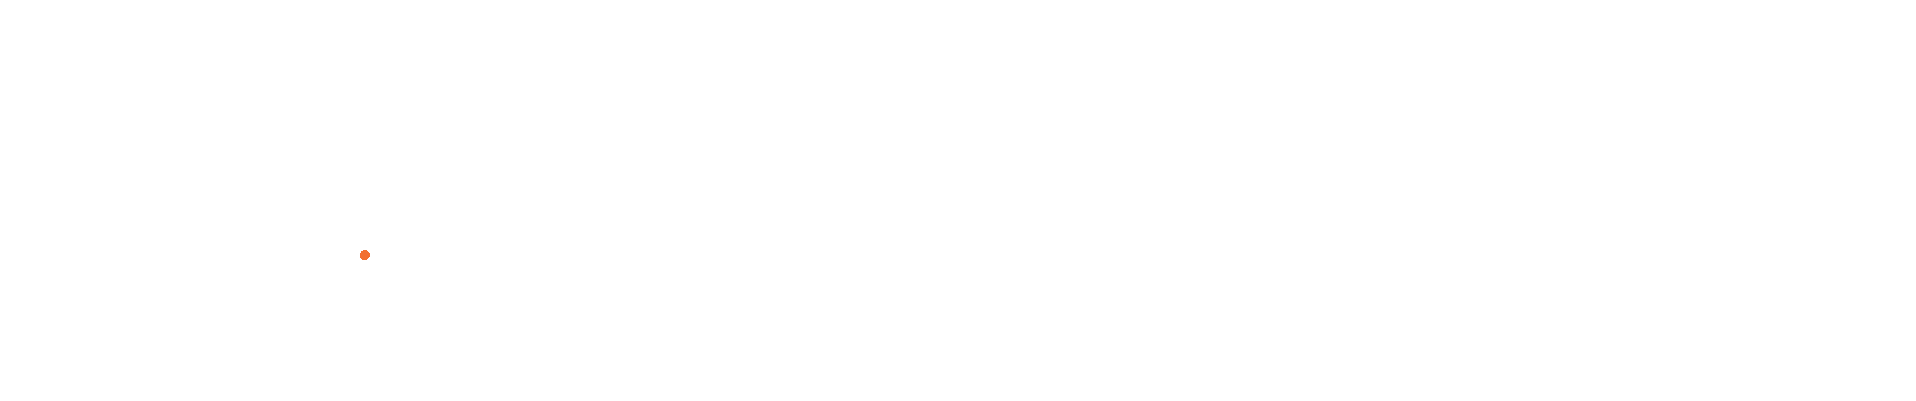 Business Growth Mindset Logo in white